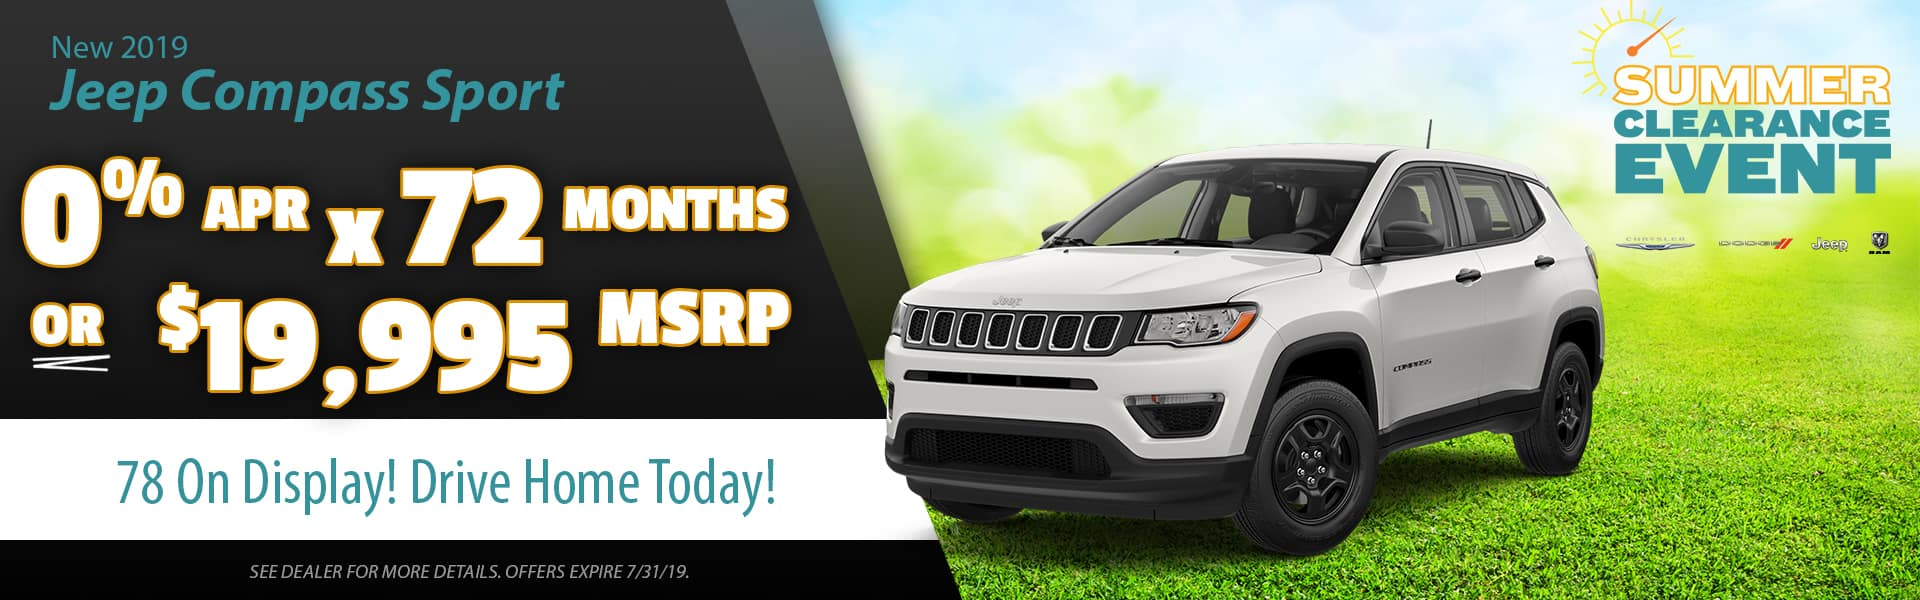 Jeep Compass Clearance deals